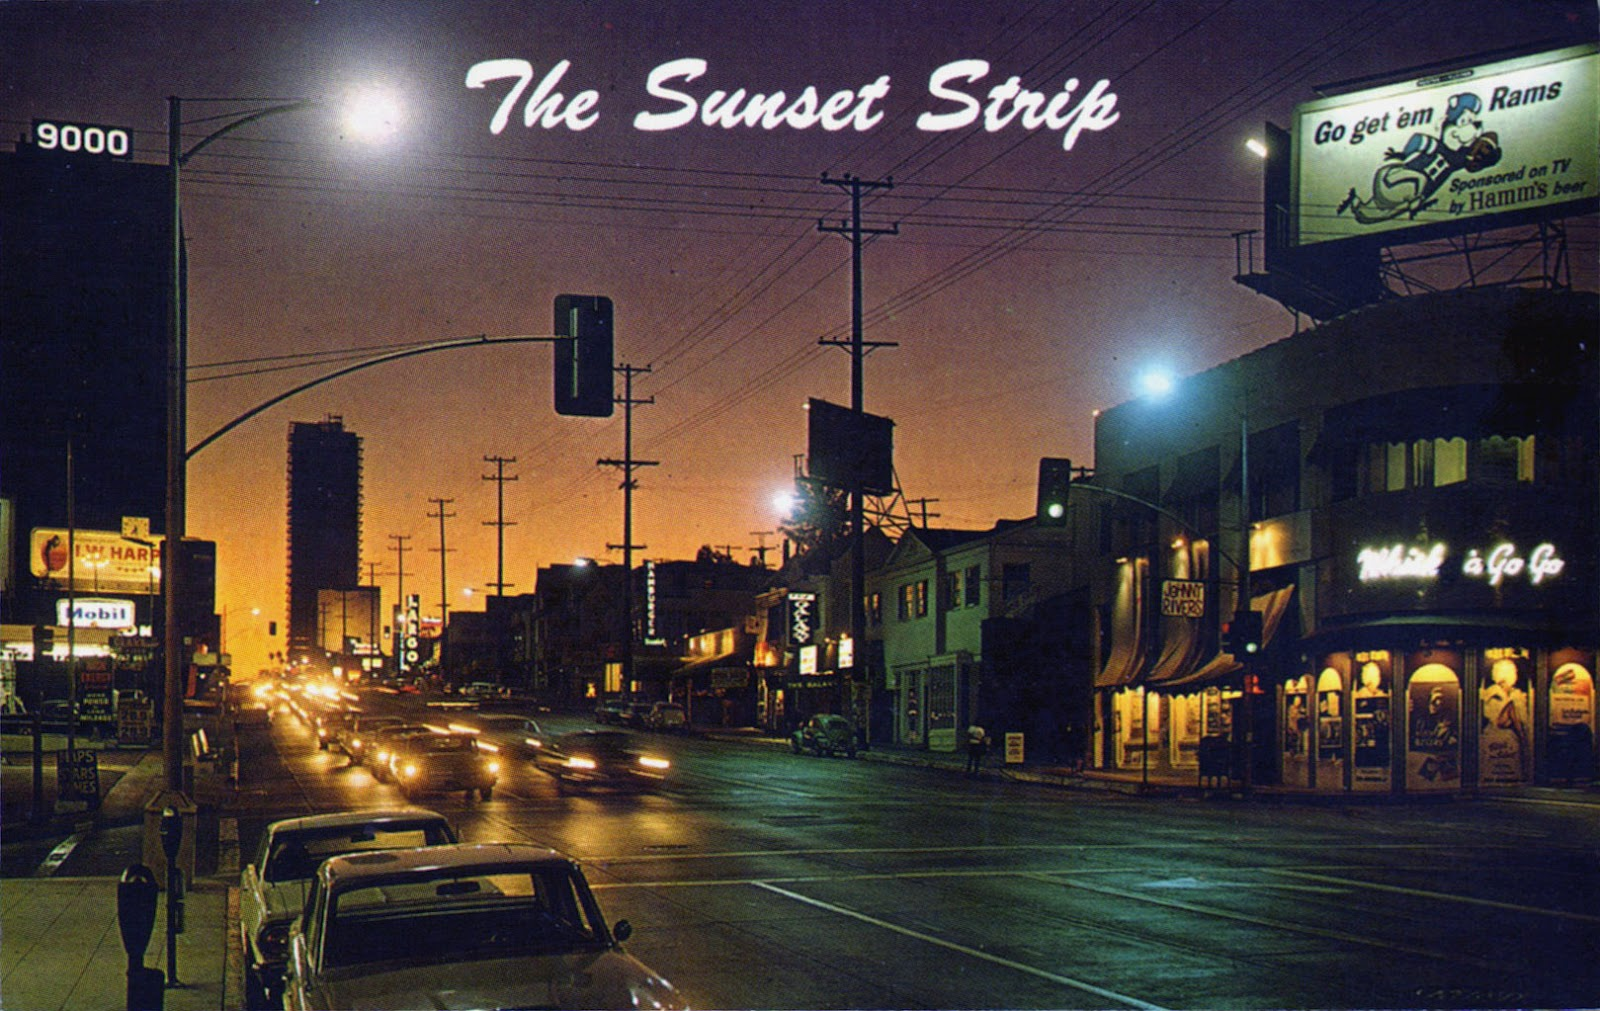 Delightful First Church Los Angeles #1: The_sunset_strip_hollywood_CA.jpg